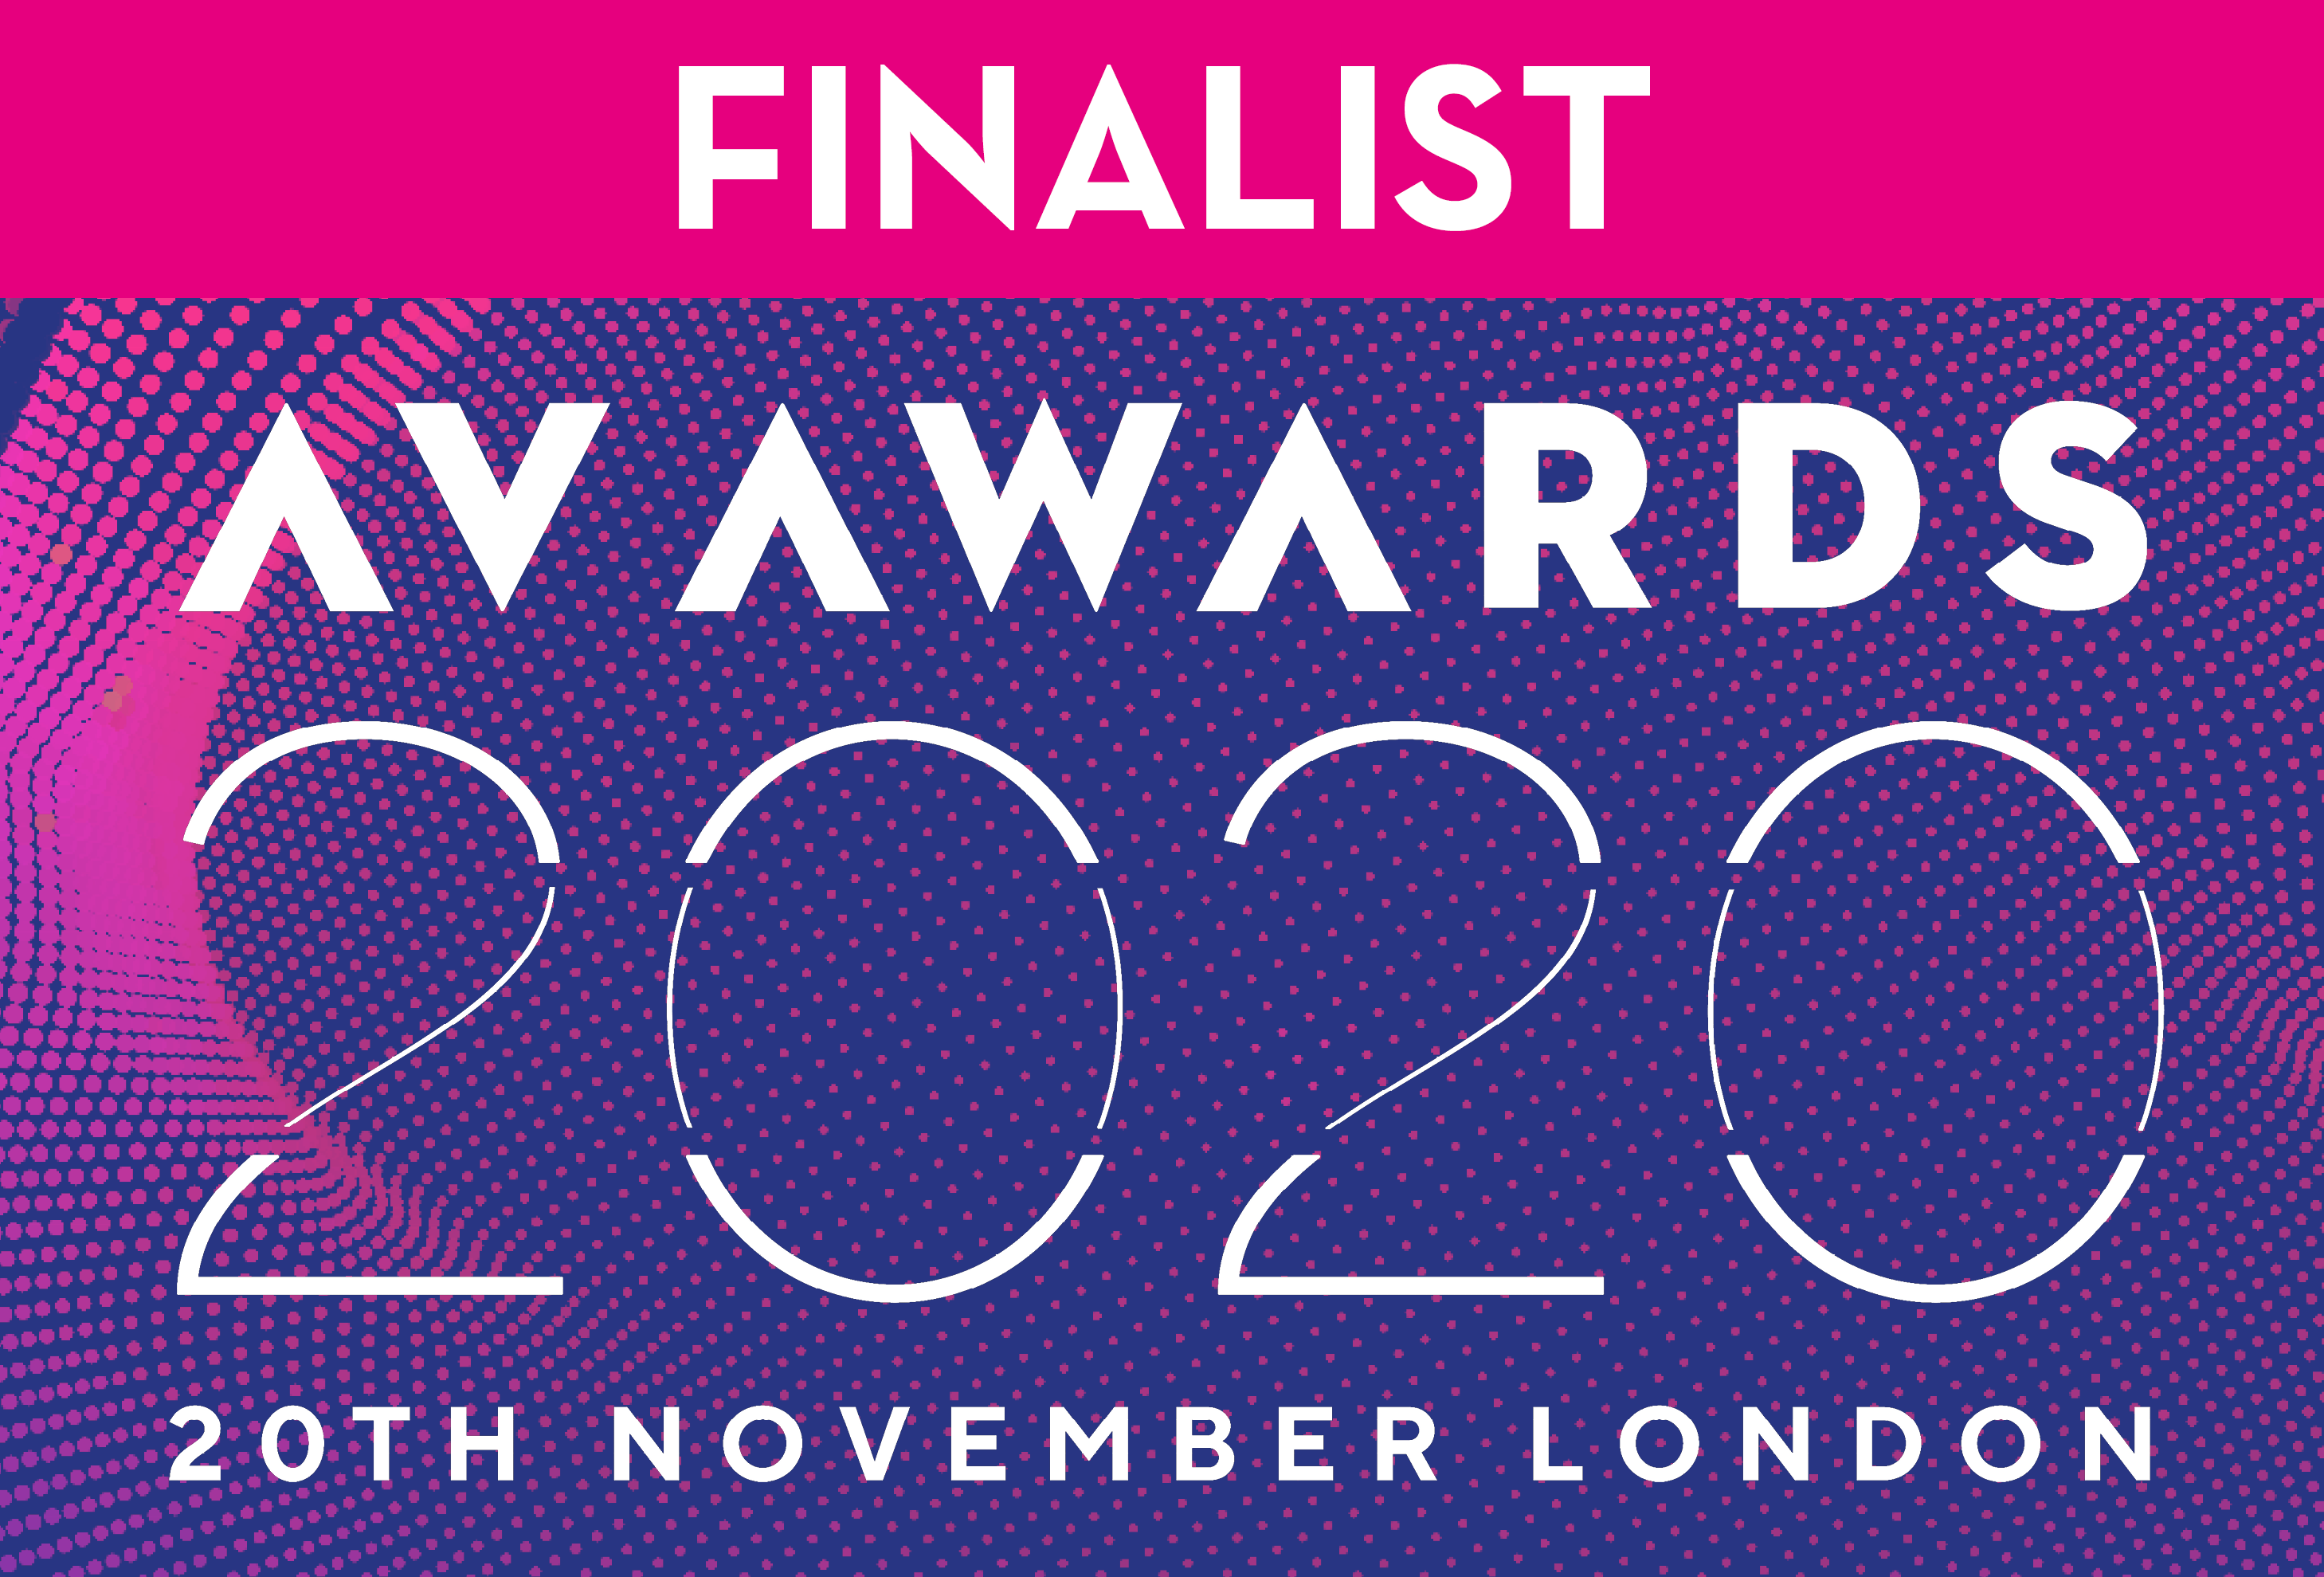 AV Awards 2020 Finalist